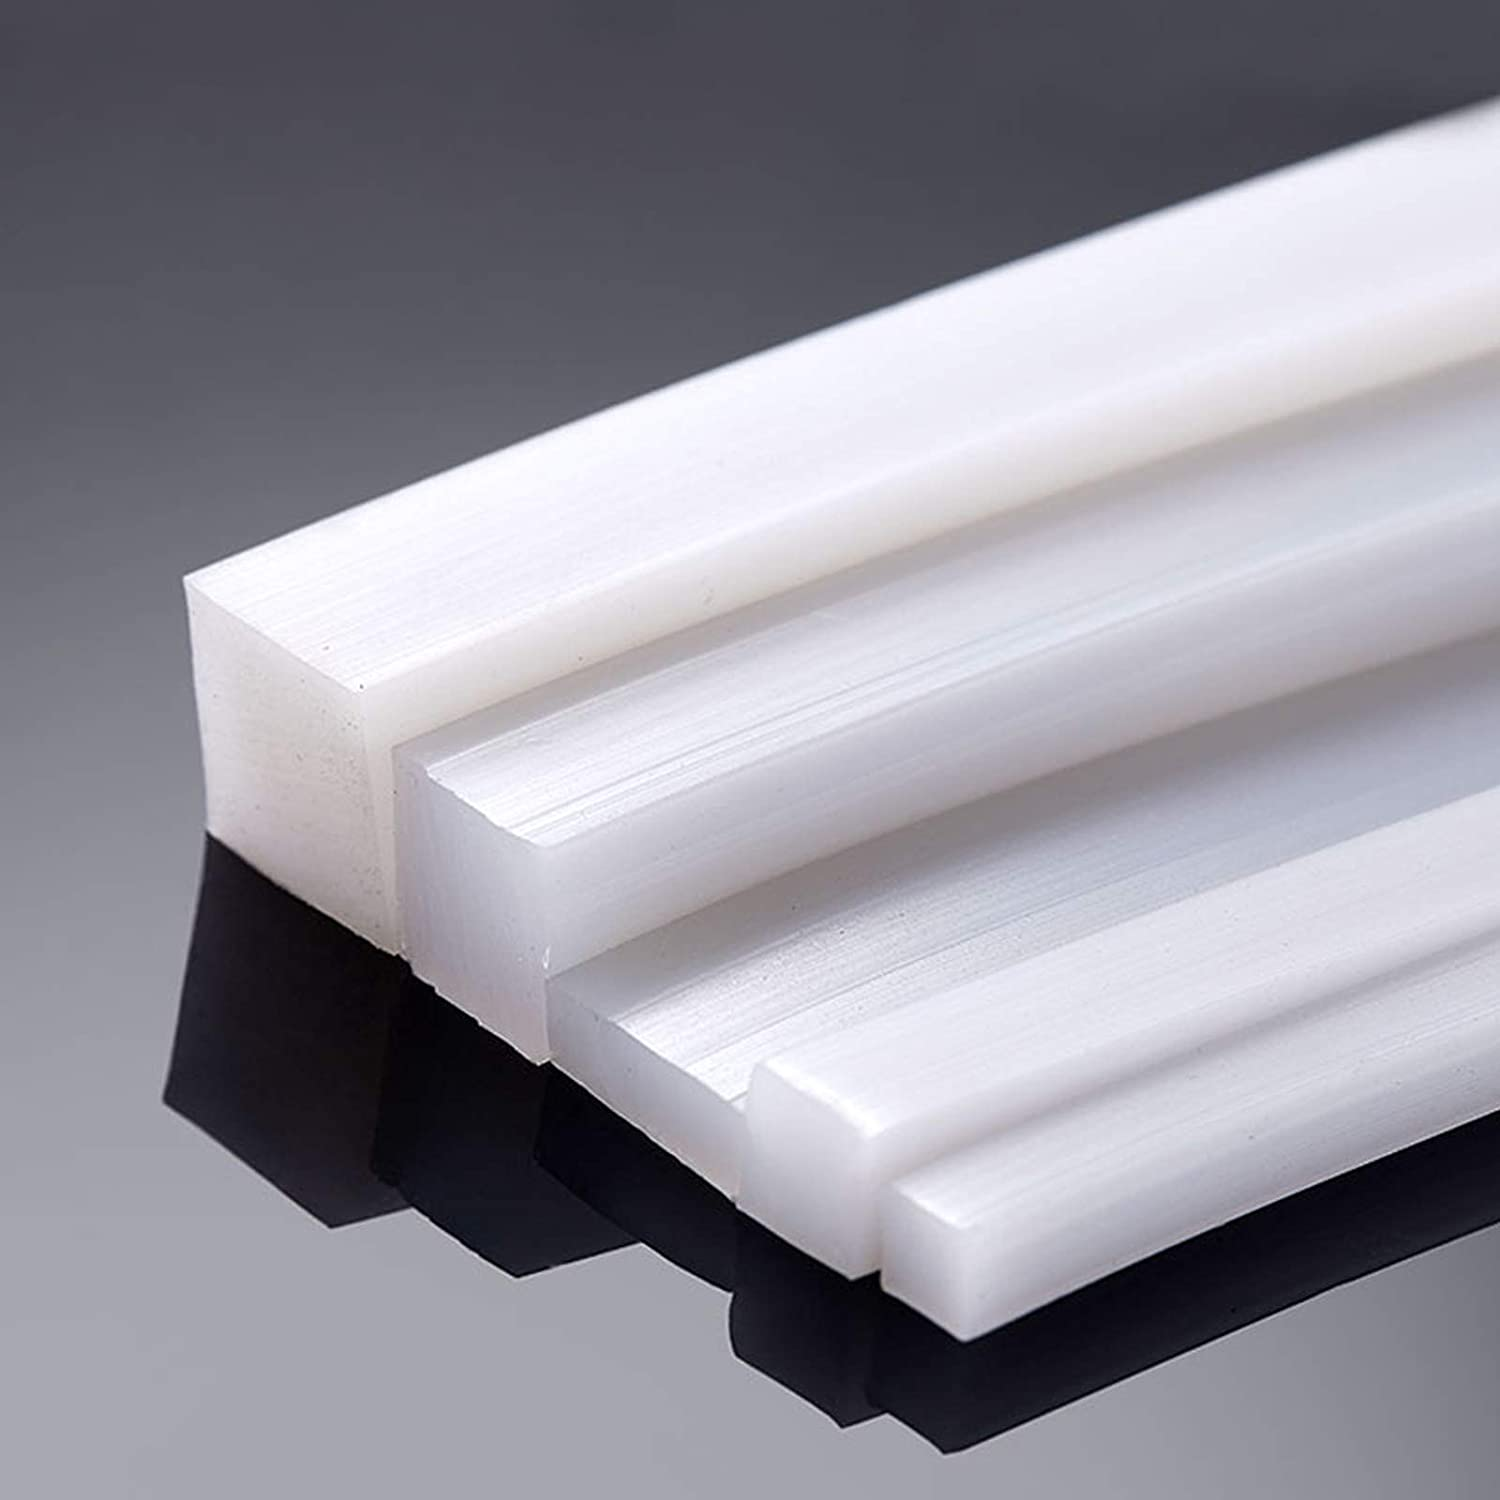 SHOUCAN Silicone Sealing Strip 3/×5//3/×10//2/×2mm Suitable for Shock Absorption of Industrial Machinery and Equipment Length 10 Meter,3/×10mm